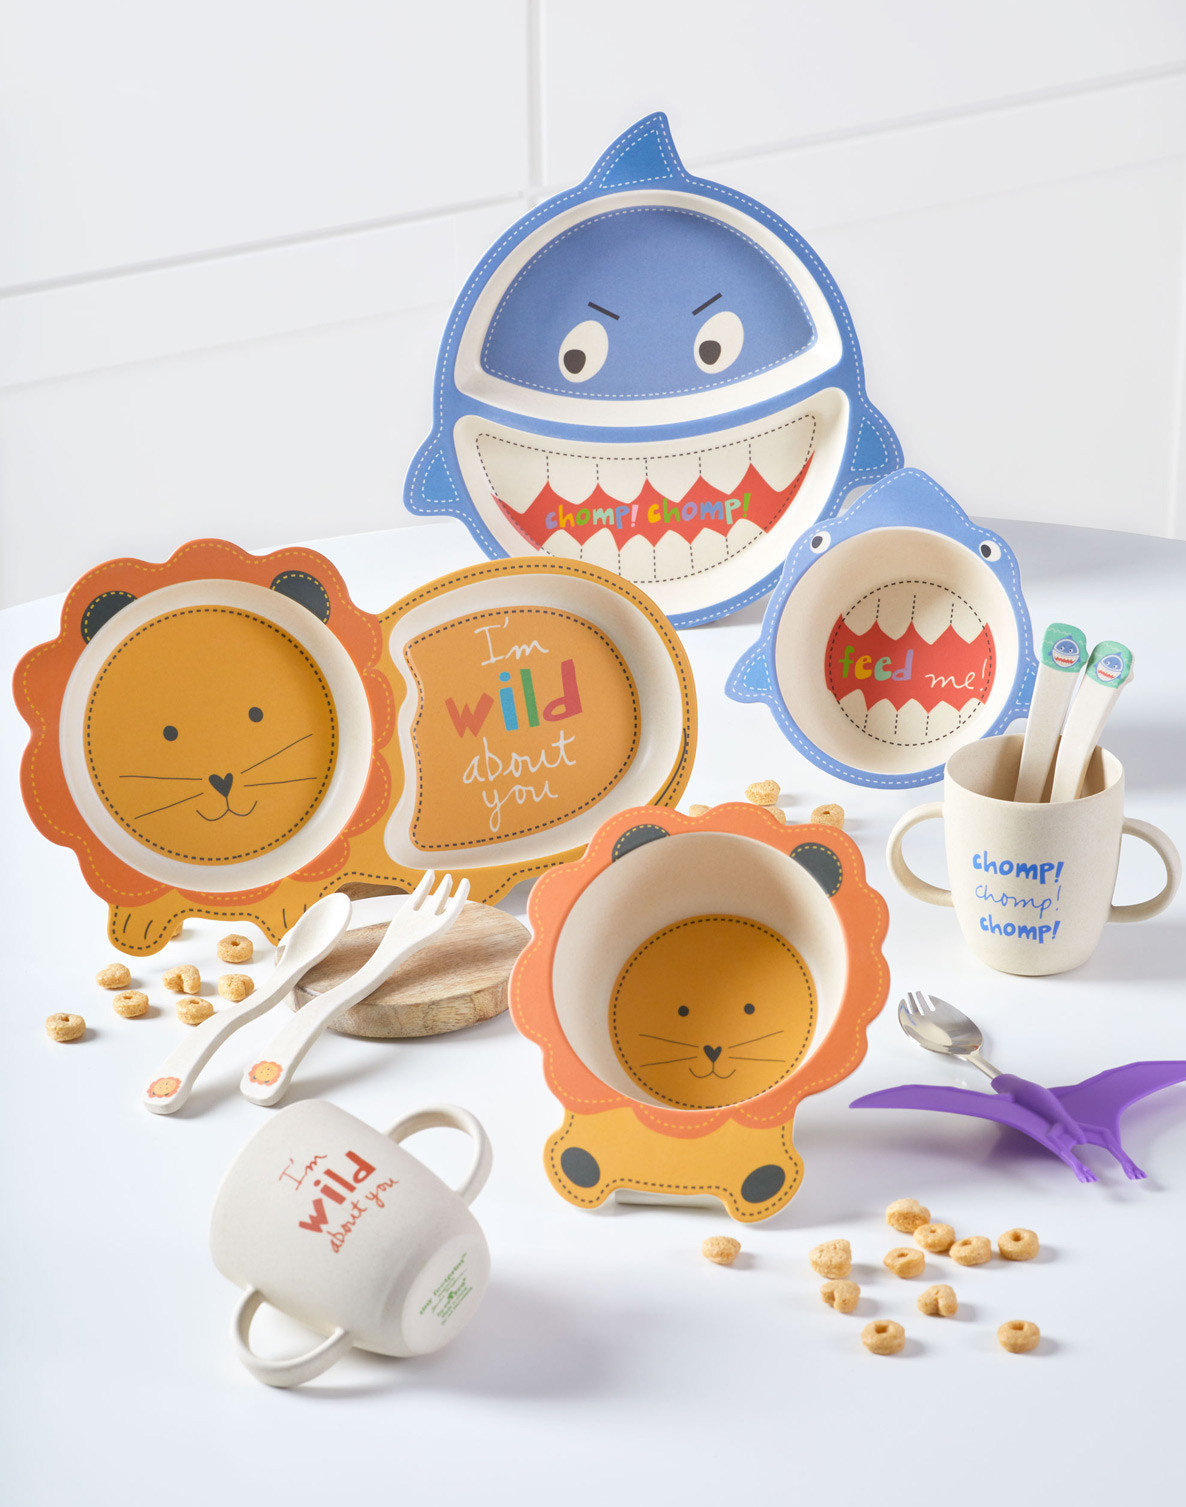 Lifestyle product photography showing a collection of plates, bowls, and eating utensils designed for children